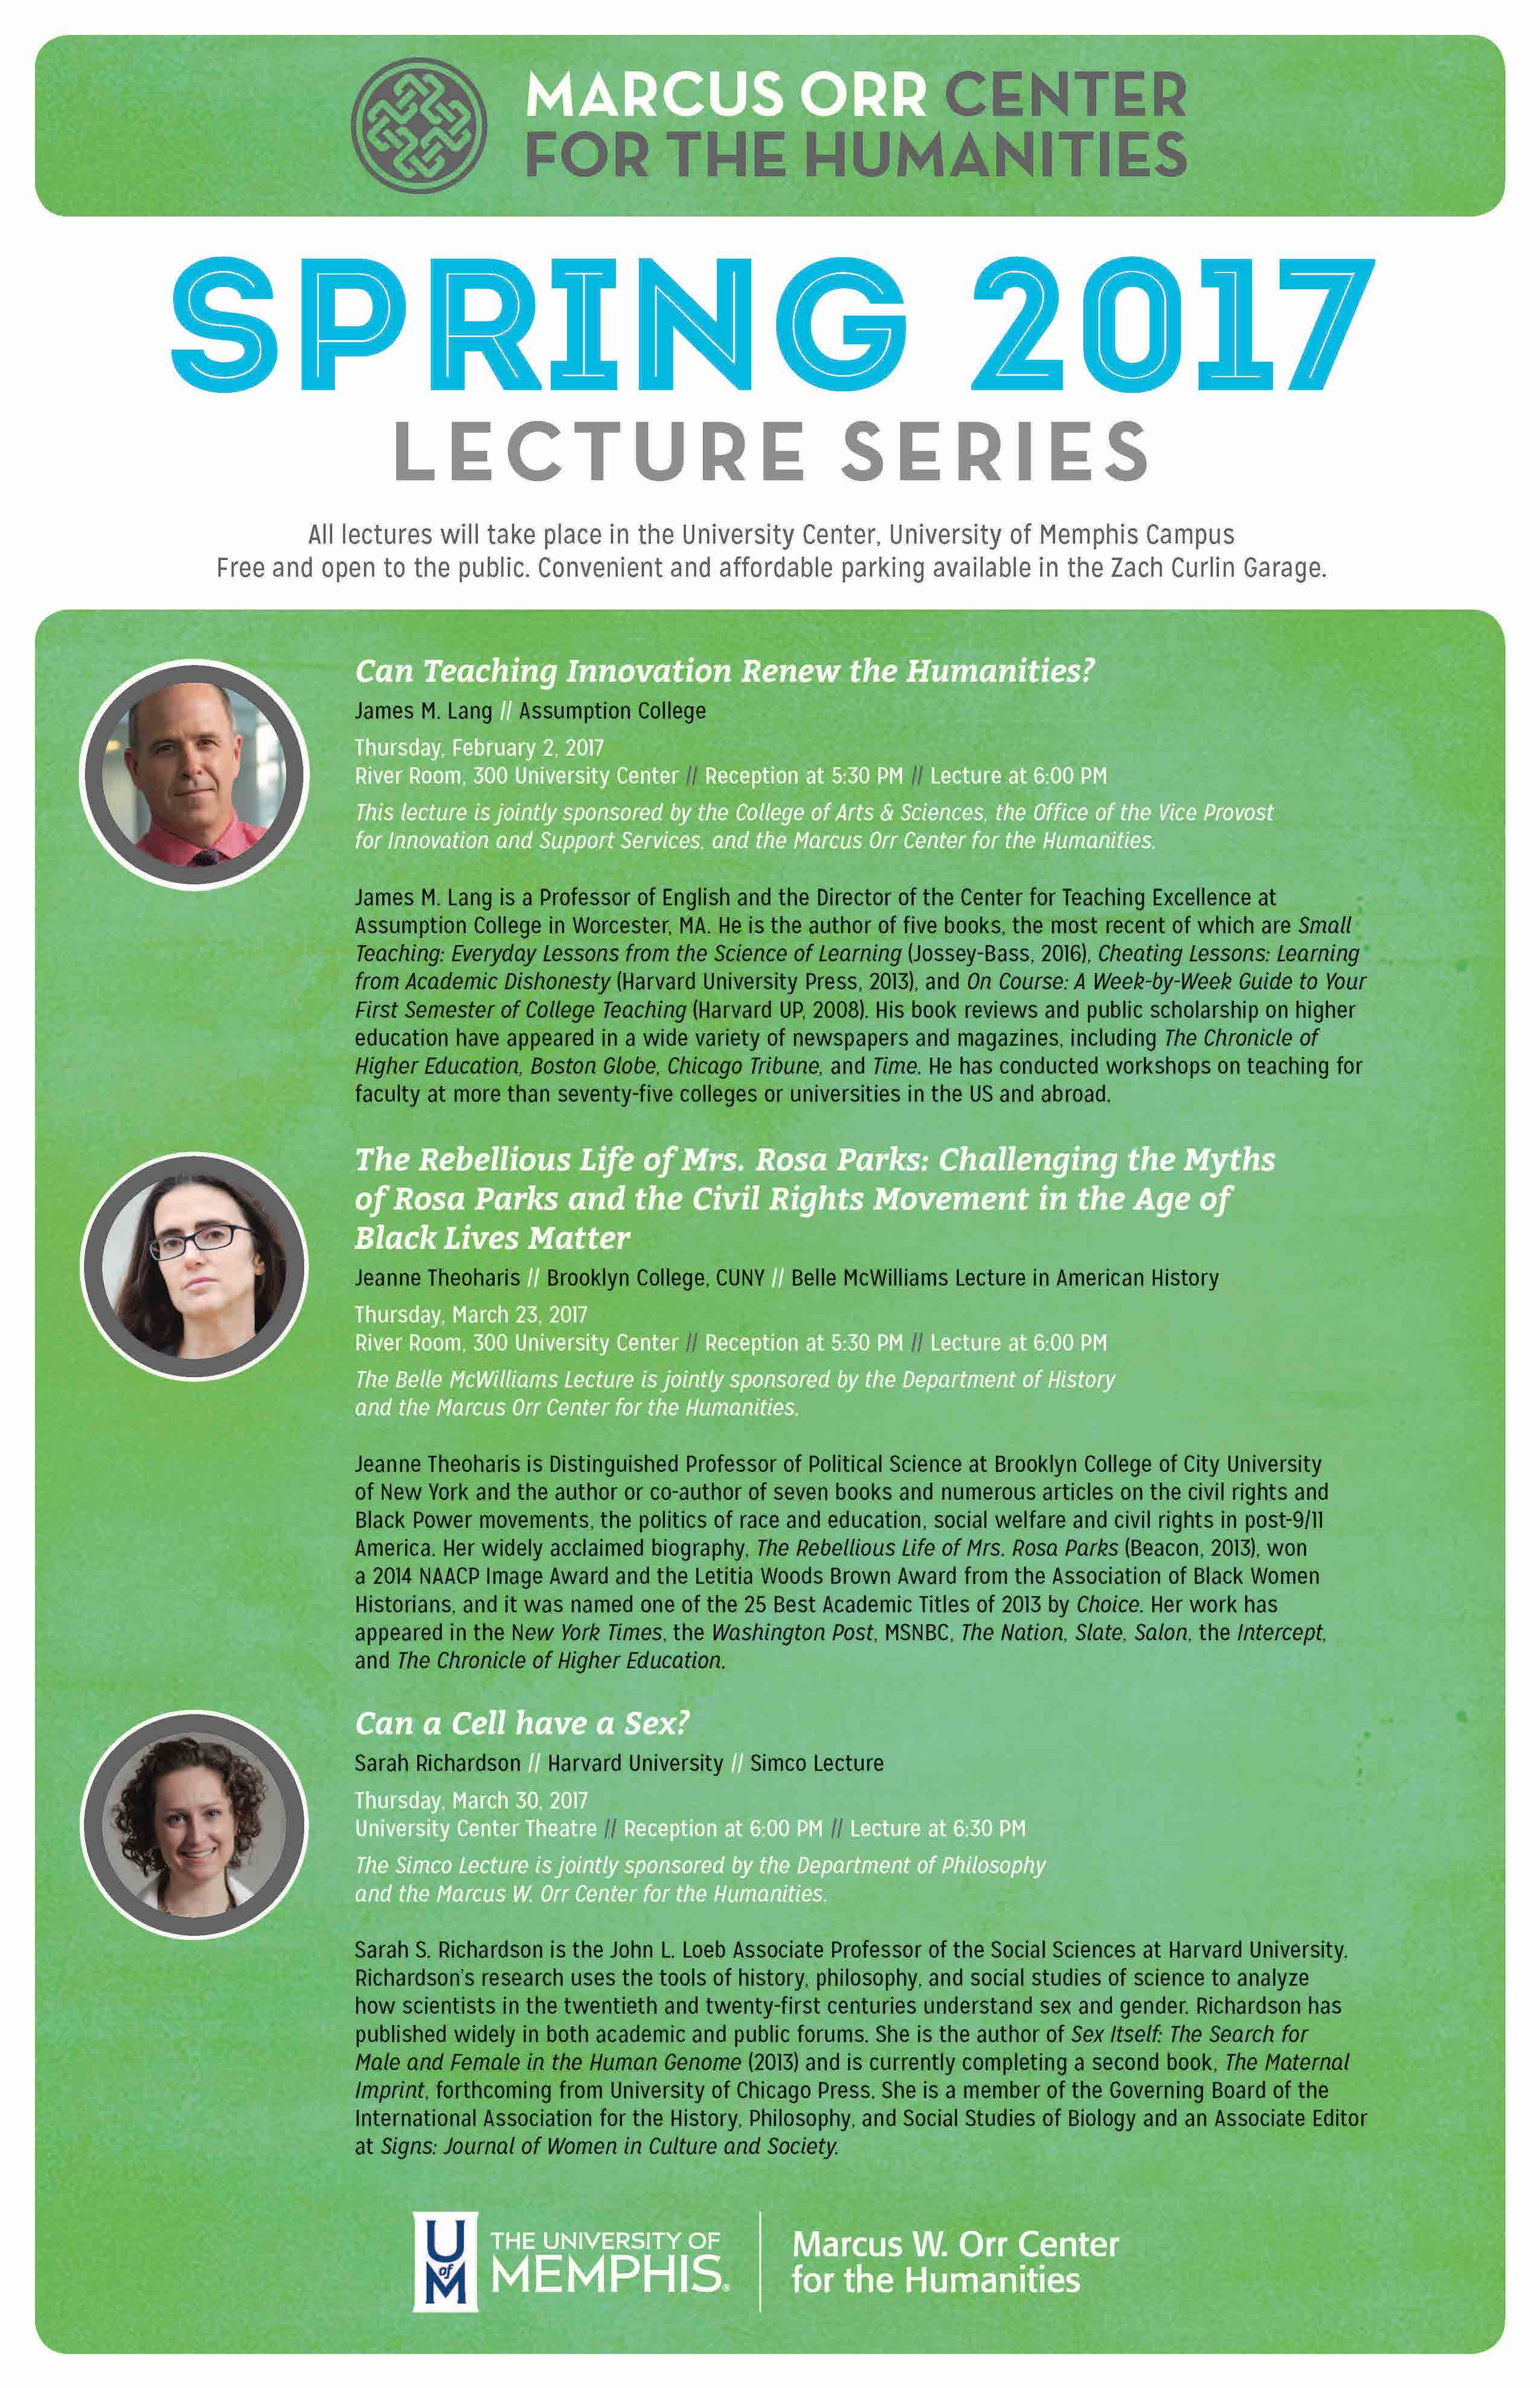 Spring 2017 Lecture Series